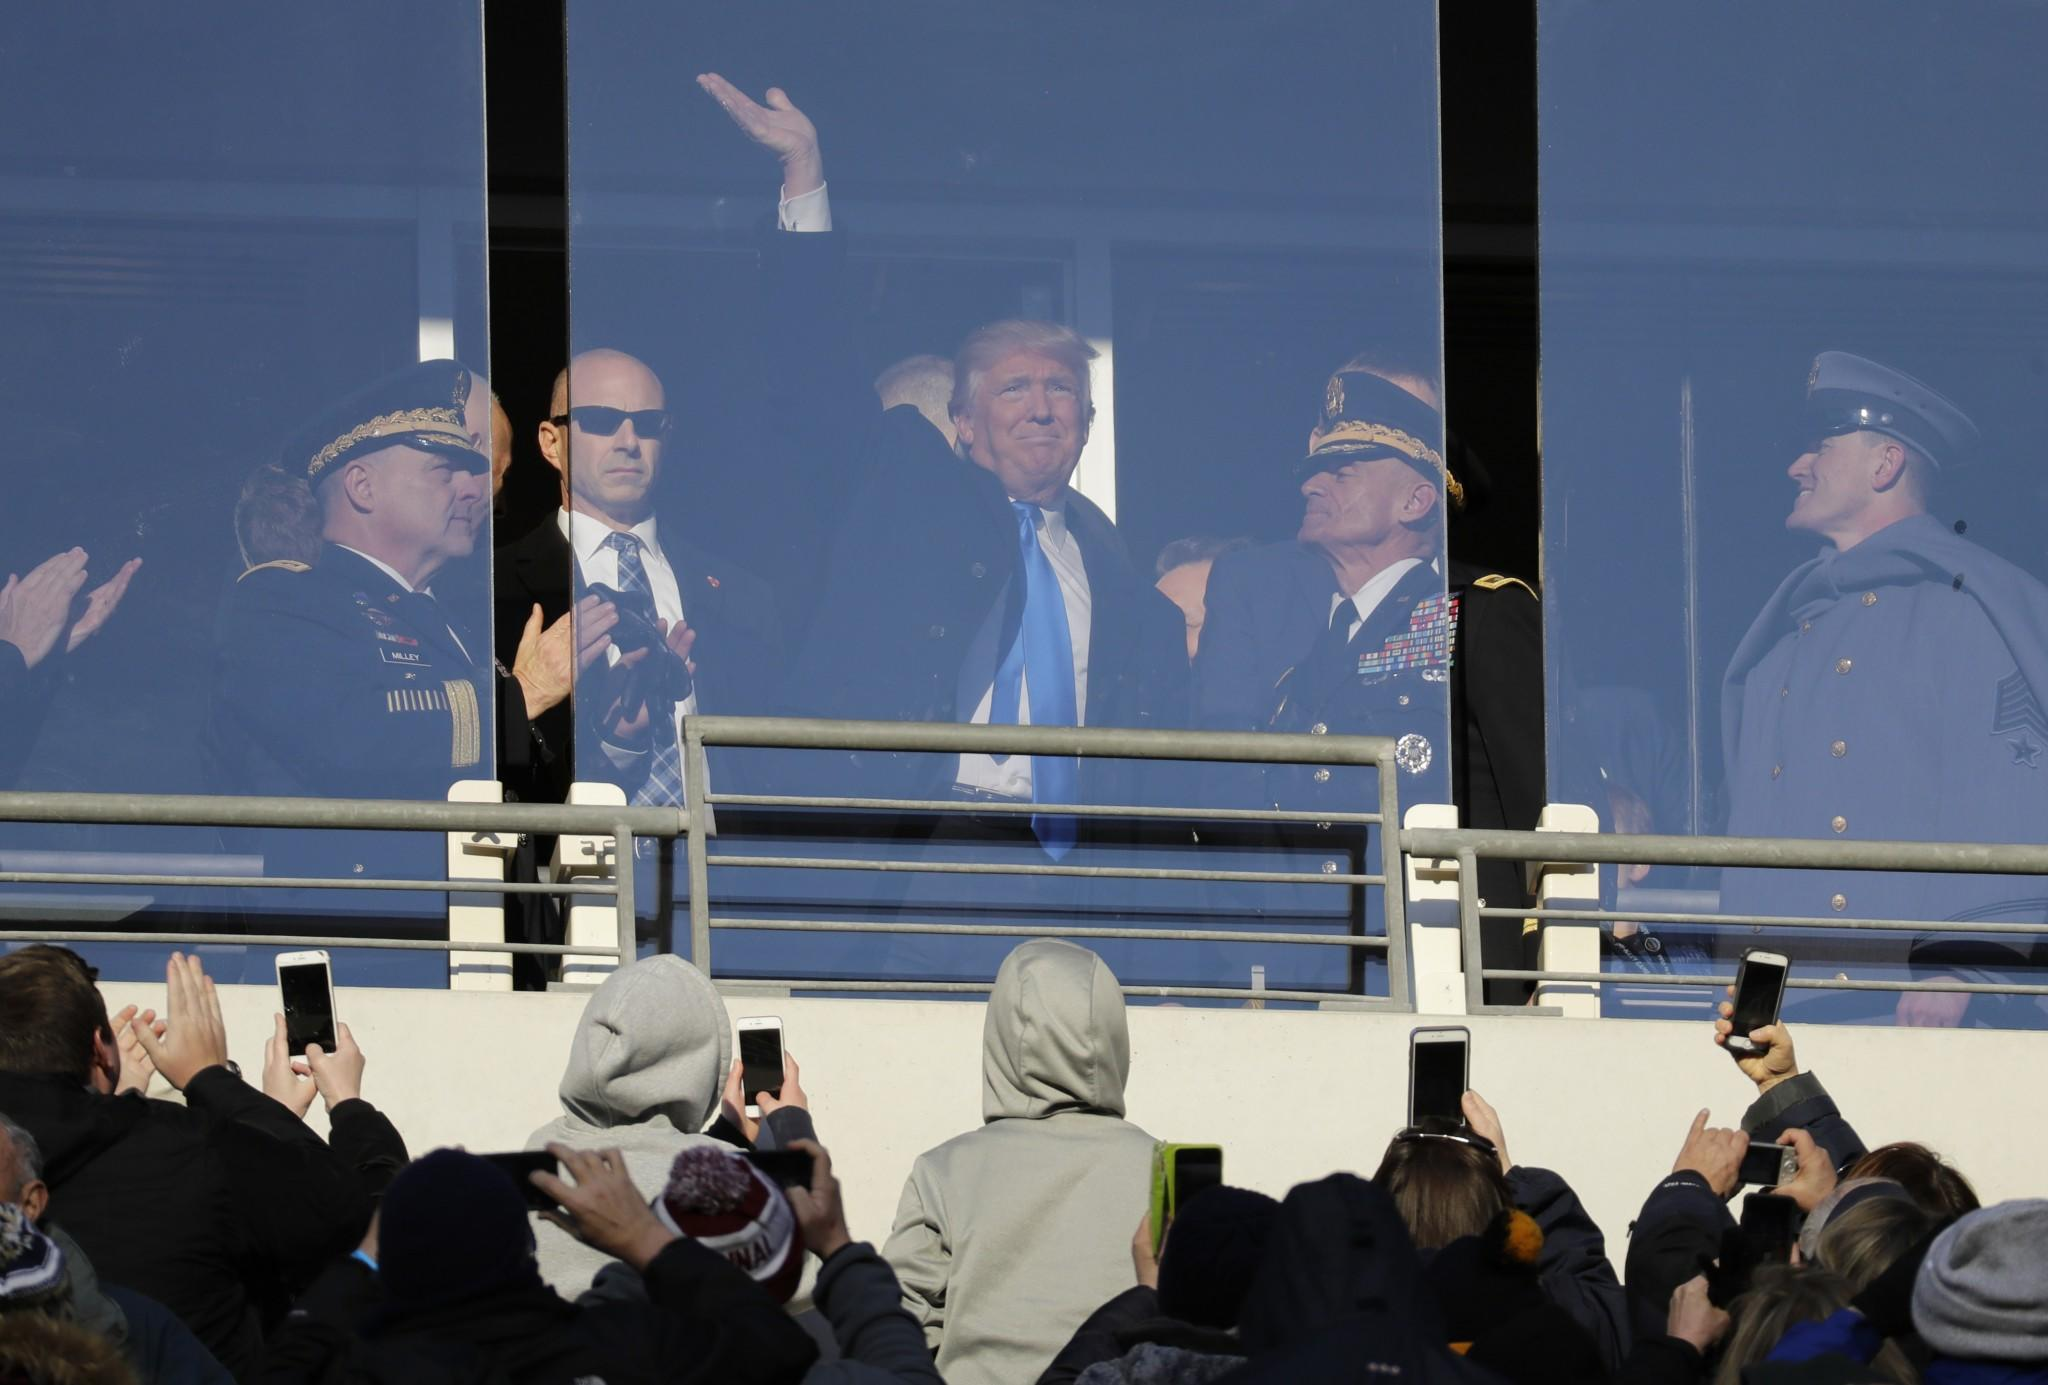 Donald Trump didn't seem impressed by the quality of the Army-Navy football game (Video)